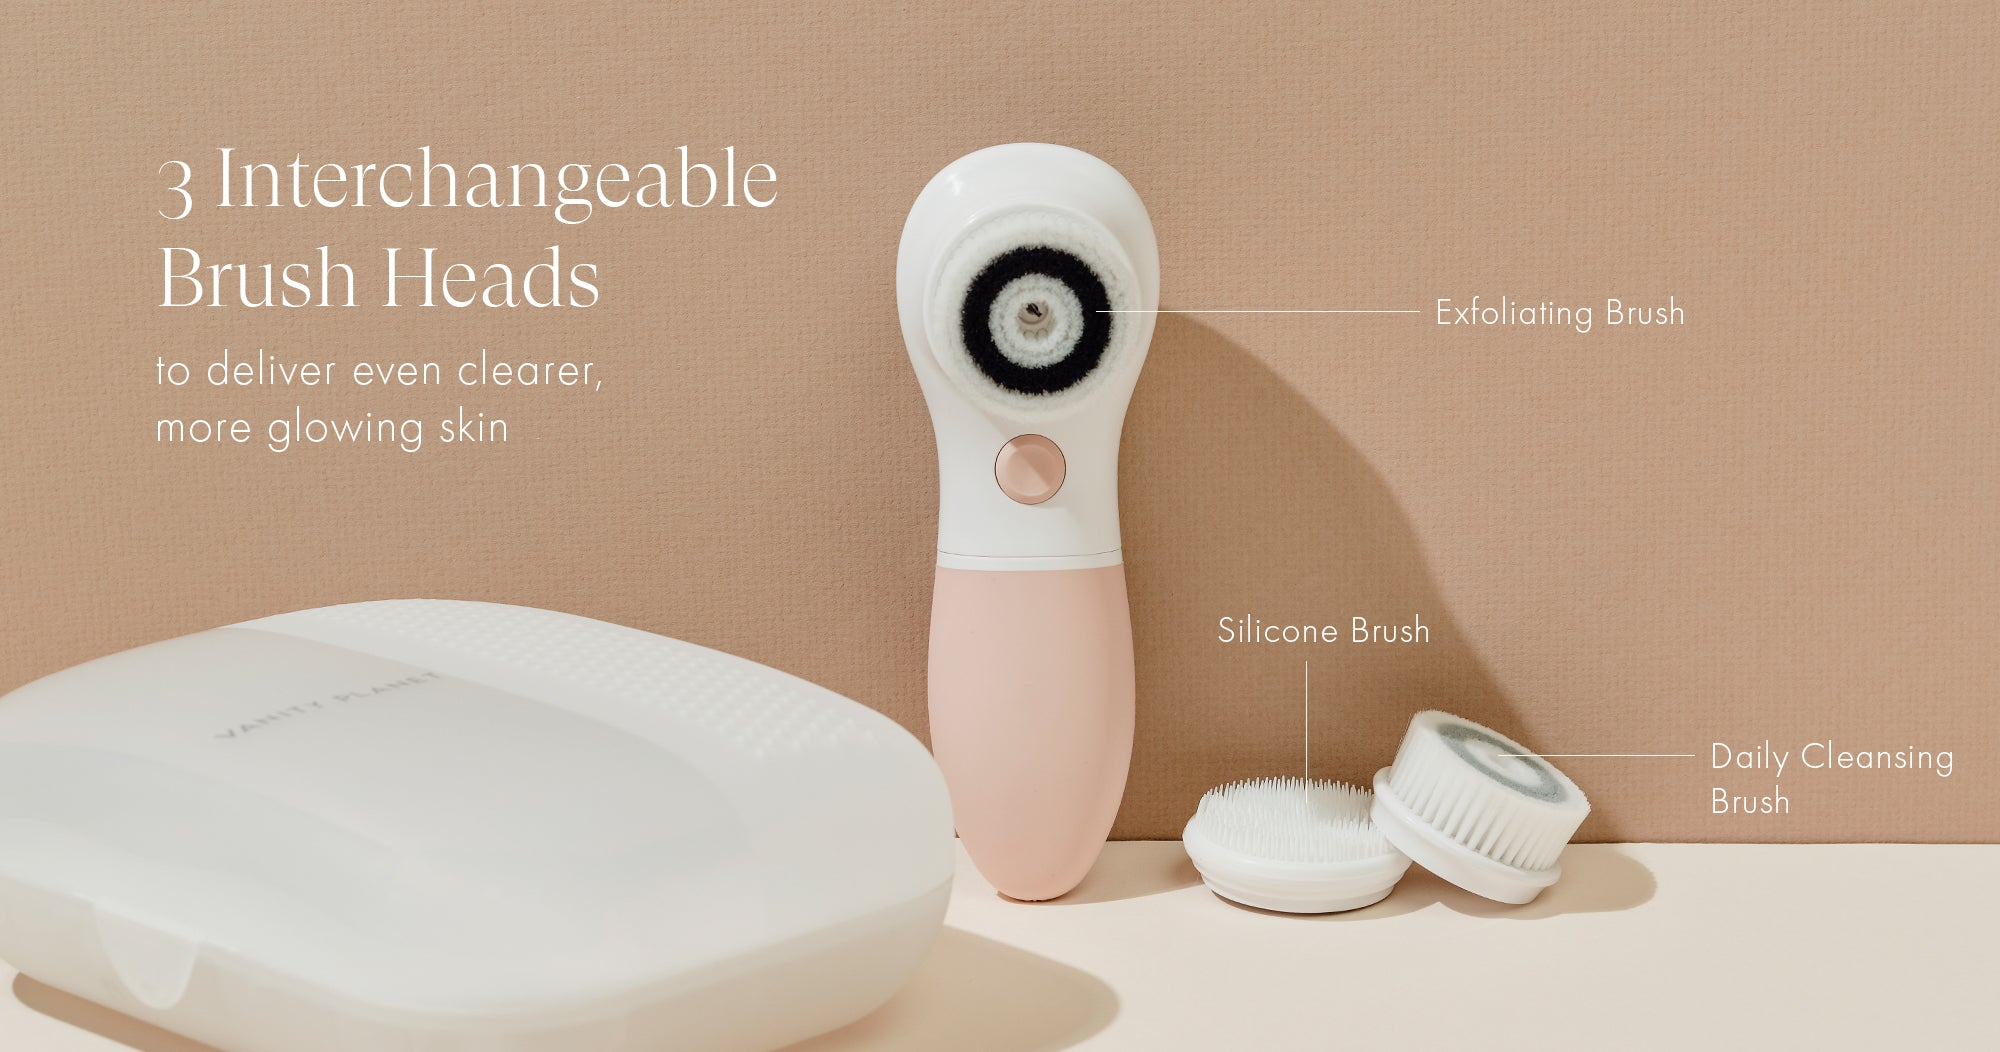 3 Interchangeable Brush Heads to deliver even clearer, more glowing skin. Exfoliating Brush, Silicone Brush, Daily Cleansing Brush.